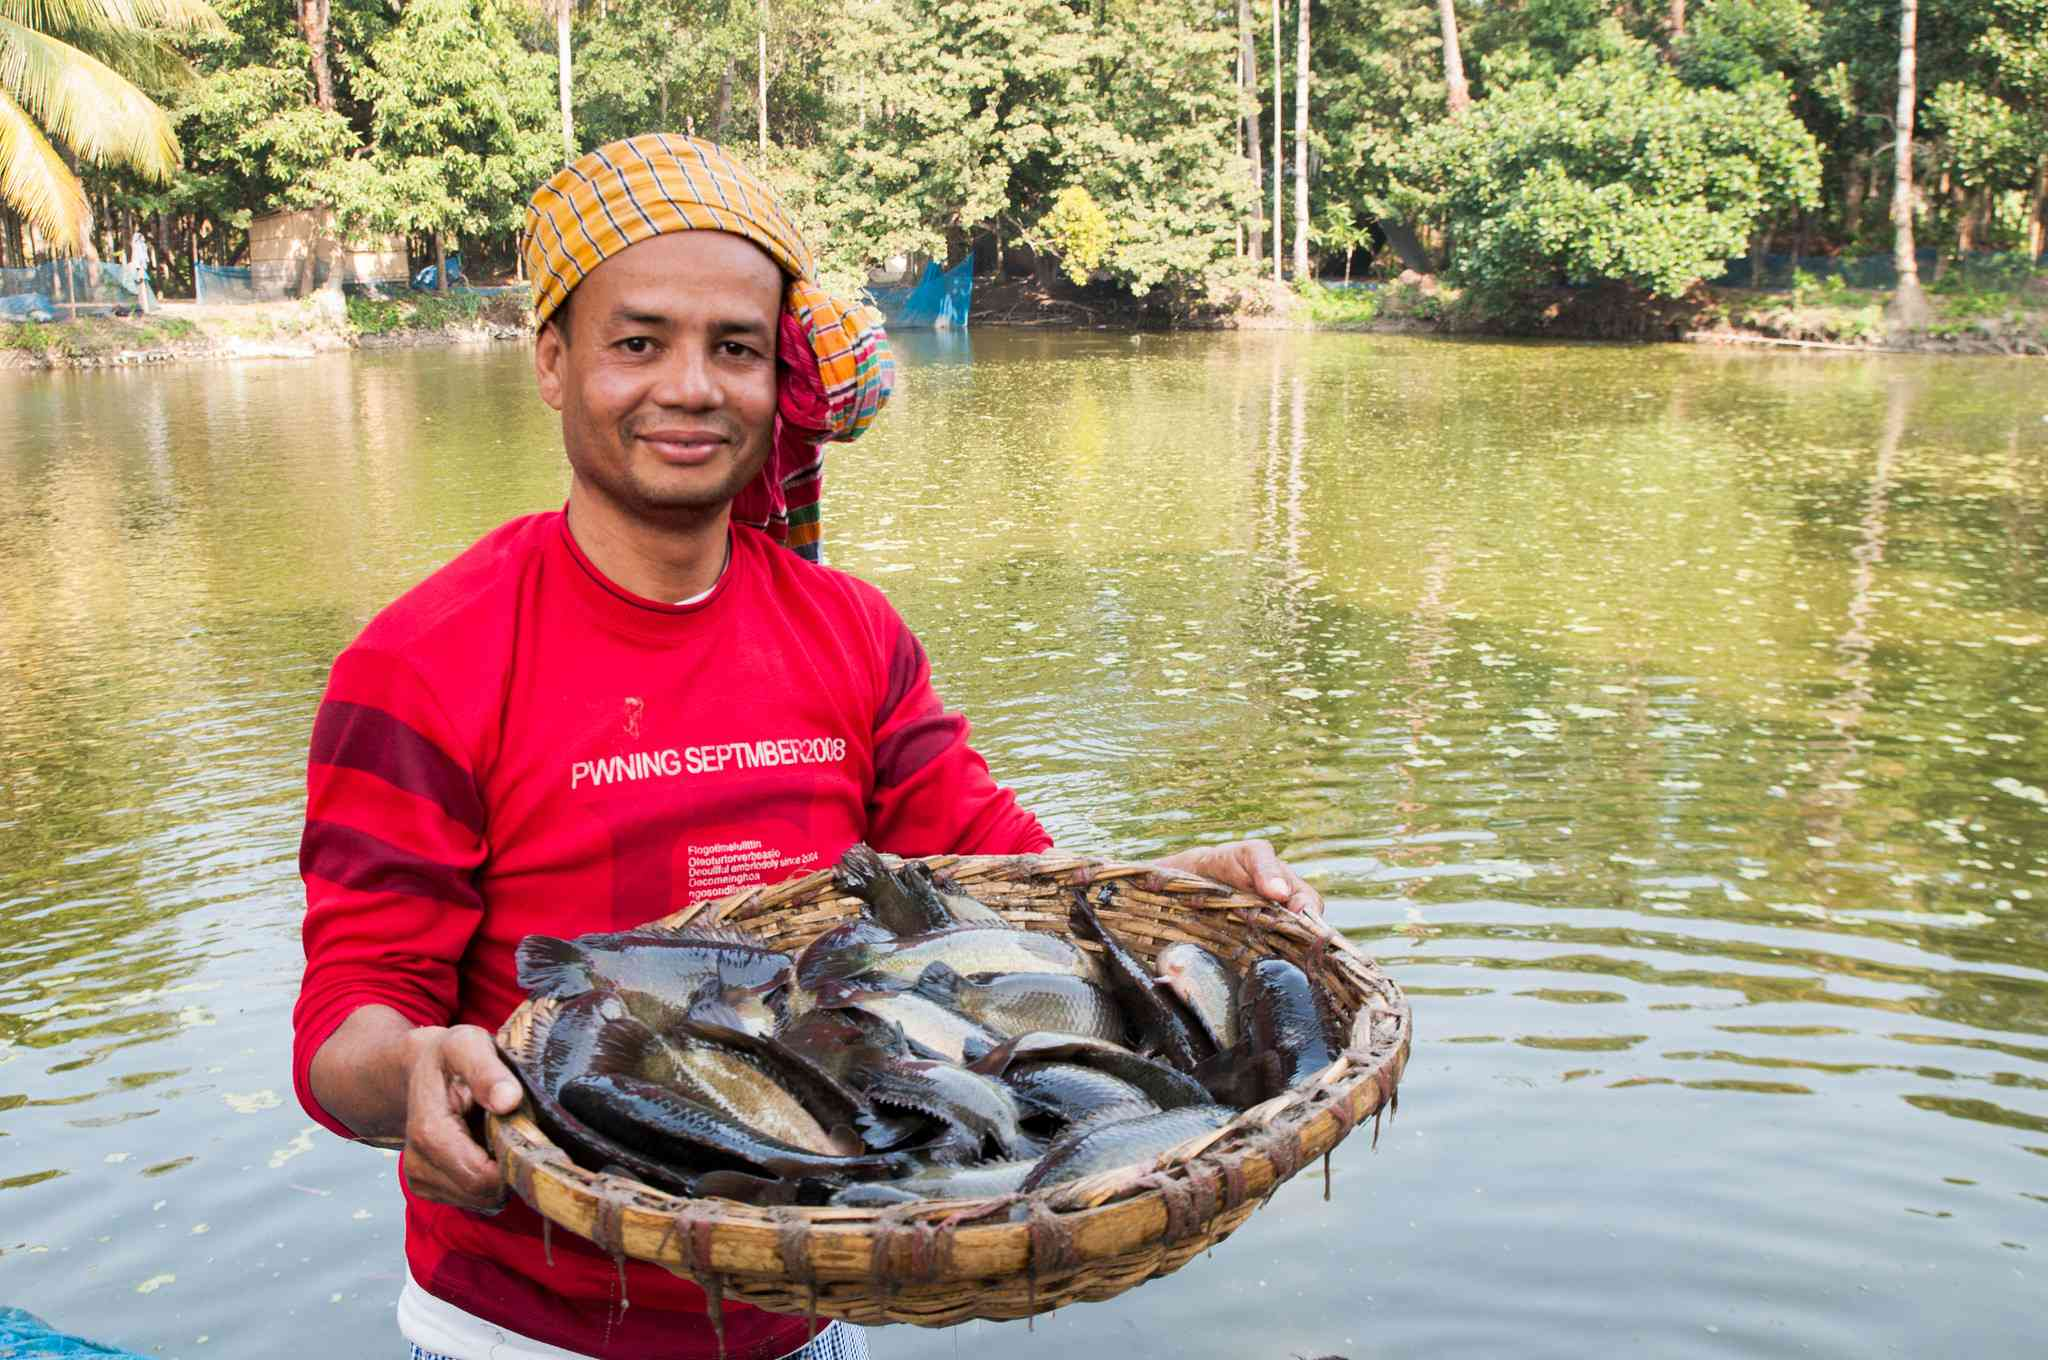 Farmer holding Climbing fish from his pond.